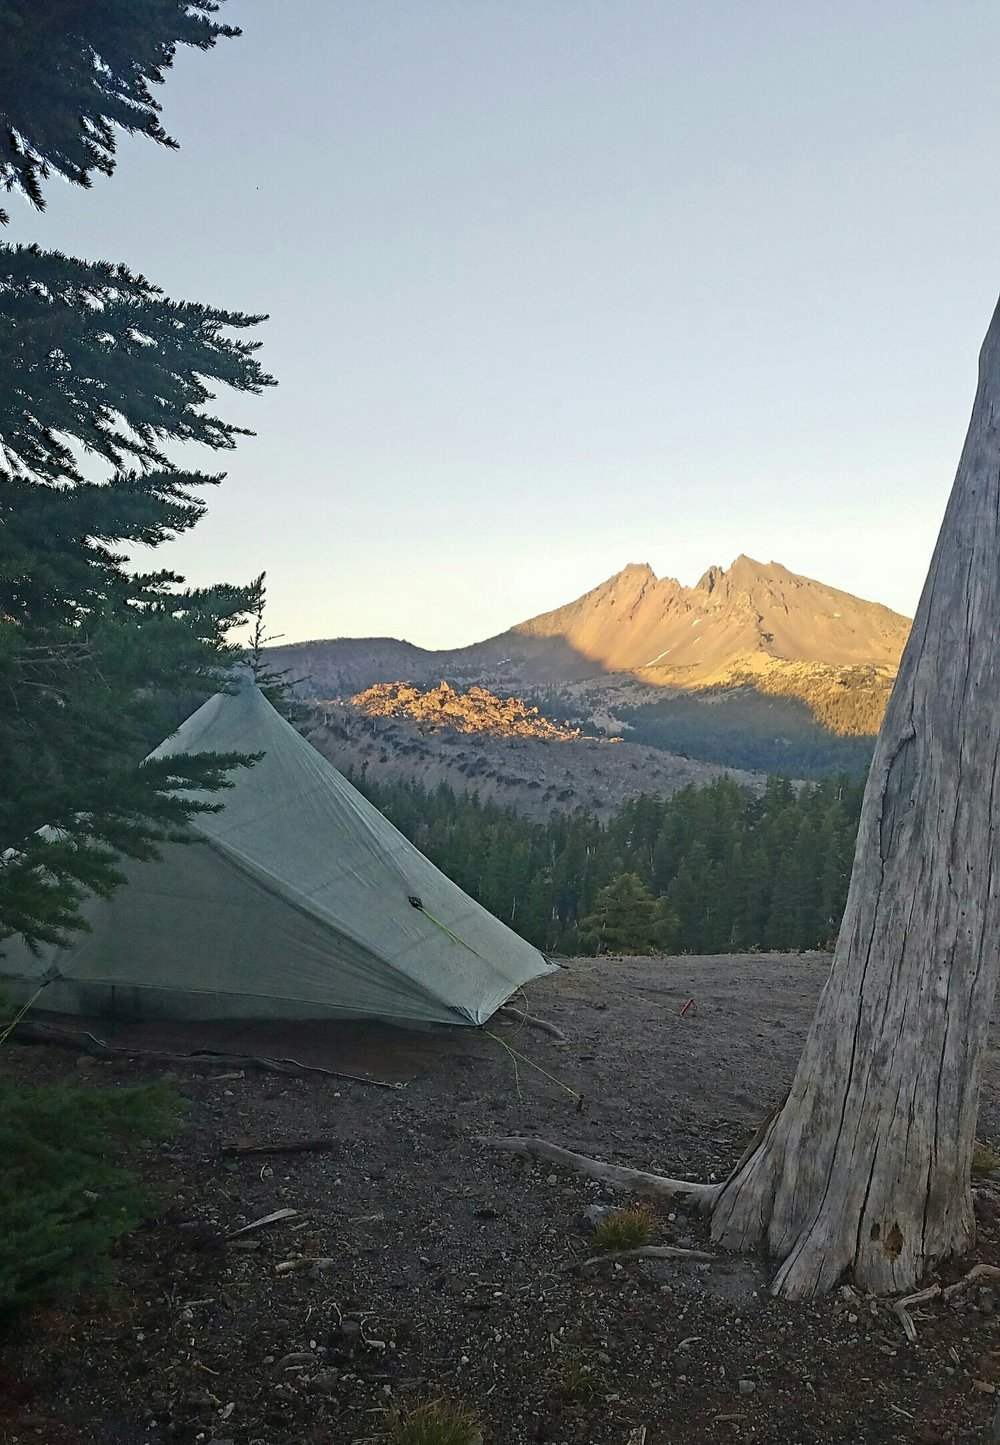 our campsite for the night and view toward Brokentop